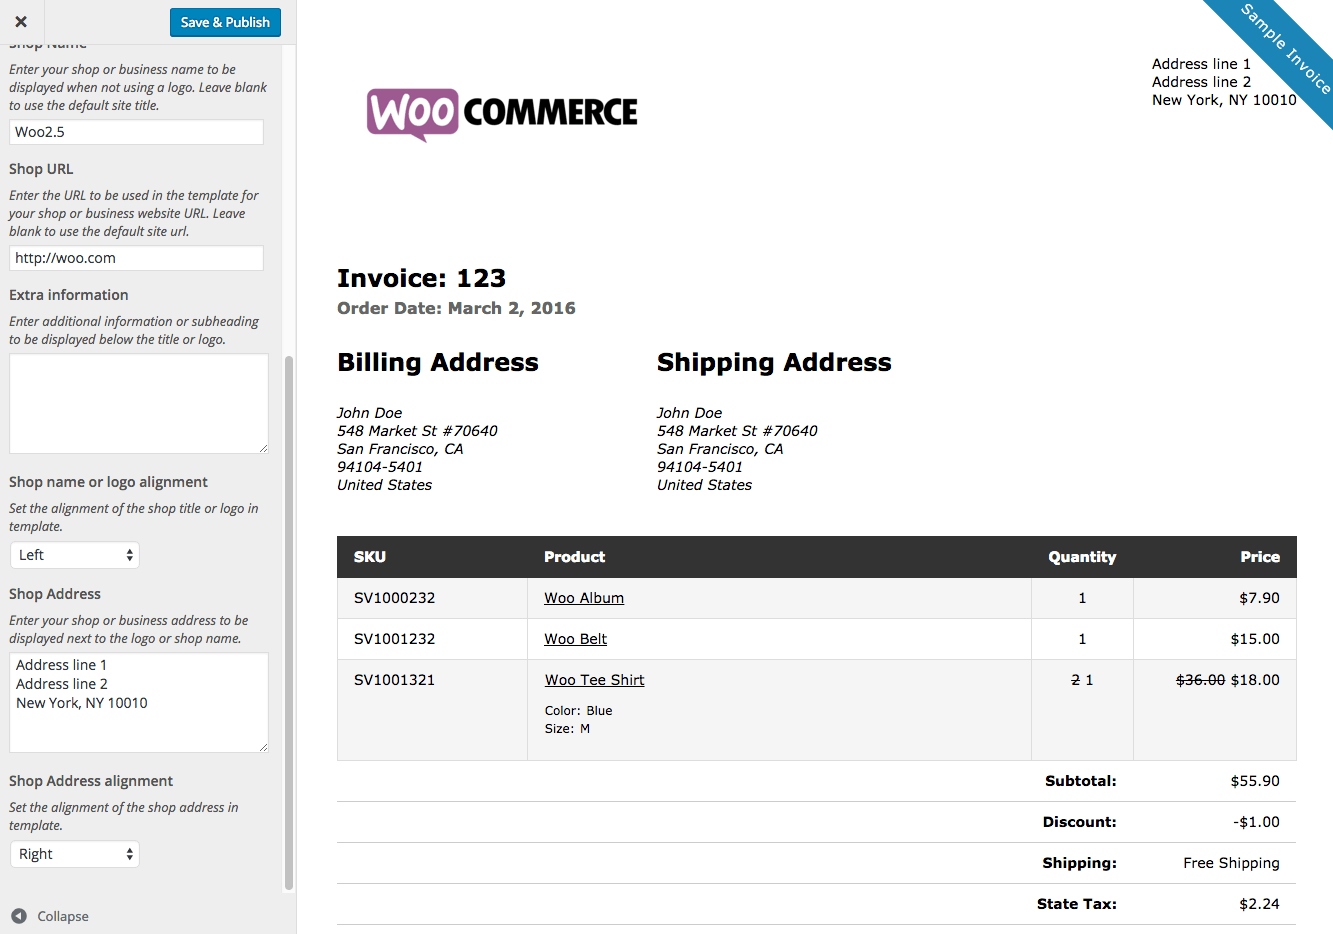 Coachoutletonlineplusus  Ravishing Woocommerce Print Invoices Amp Packing Lists  Woocommerce Docs With Fetching Woocommerce Print Invoices  Packing Lists Customizer With Delectable Receipt For Rent Payment Also Plumbing Receipt In Addition Service Receipt And Miscellaneous Receipts Act As Well As Construction Receipt Additionally Budget Rent A Car Receipt From Docswoocommercecom With Coachoutletonlineplusus  Fetching Woocommerce Print Invoices Amp Packing Lists  Woocommerce Docs With Delectable Woocommerce Print Invoices  Packing Lists Customizer And Ravishing Receipt For Rent Payment Also Plumbing Receipt In Addition Service Receipt From Docswoocommercecom